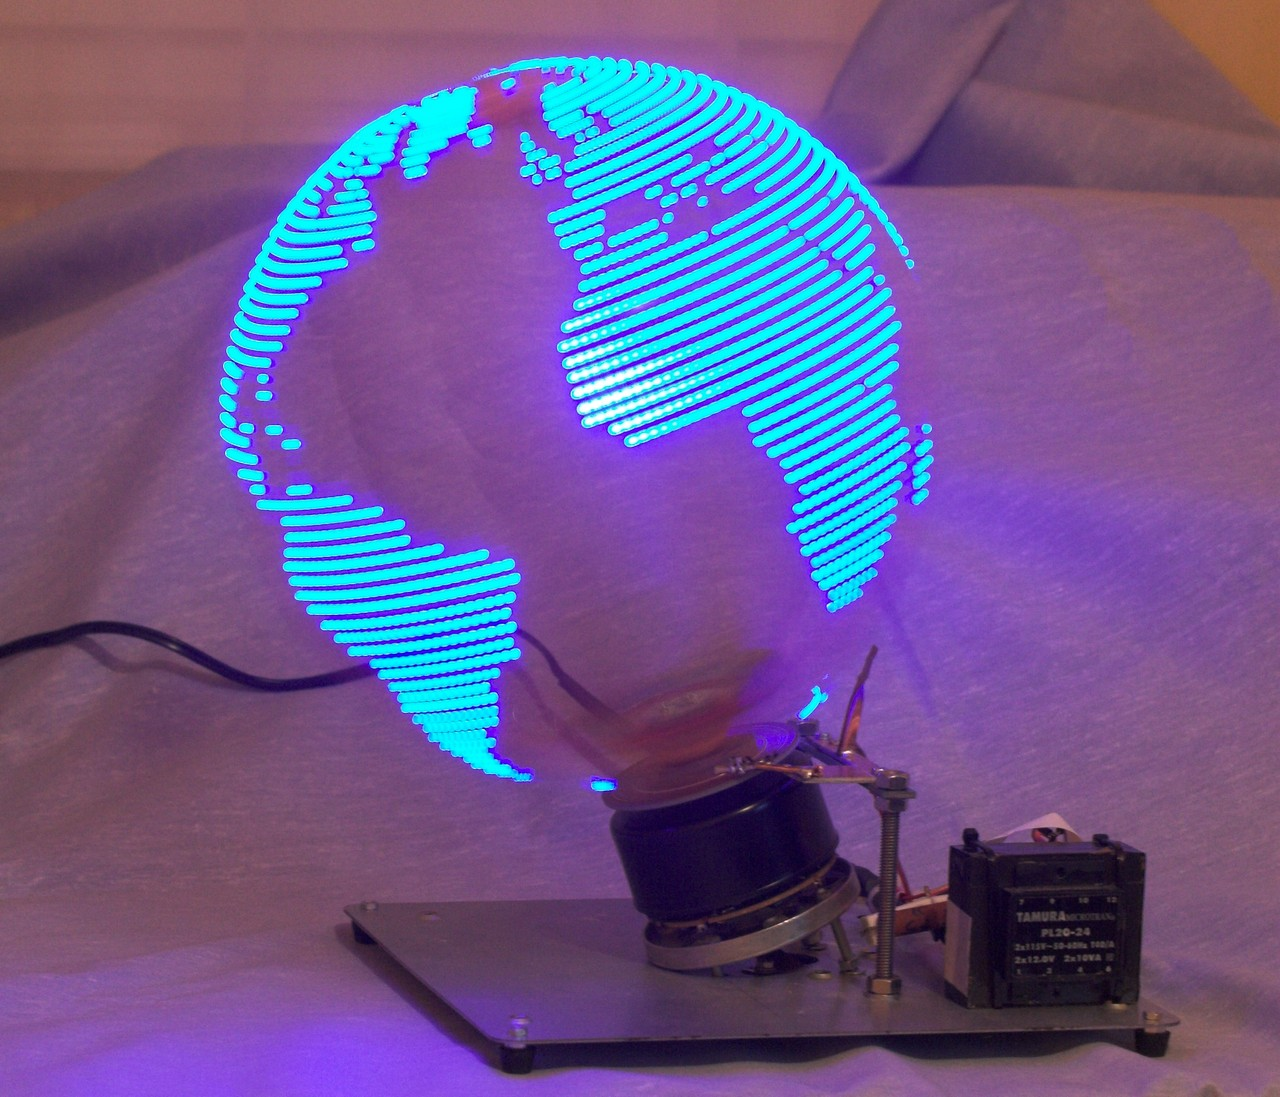 Persistence of vision in DIY Electronics